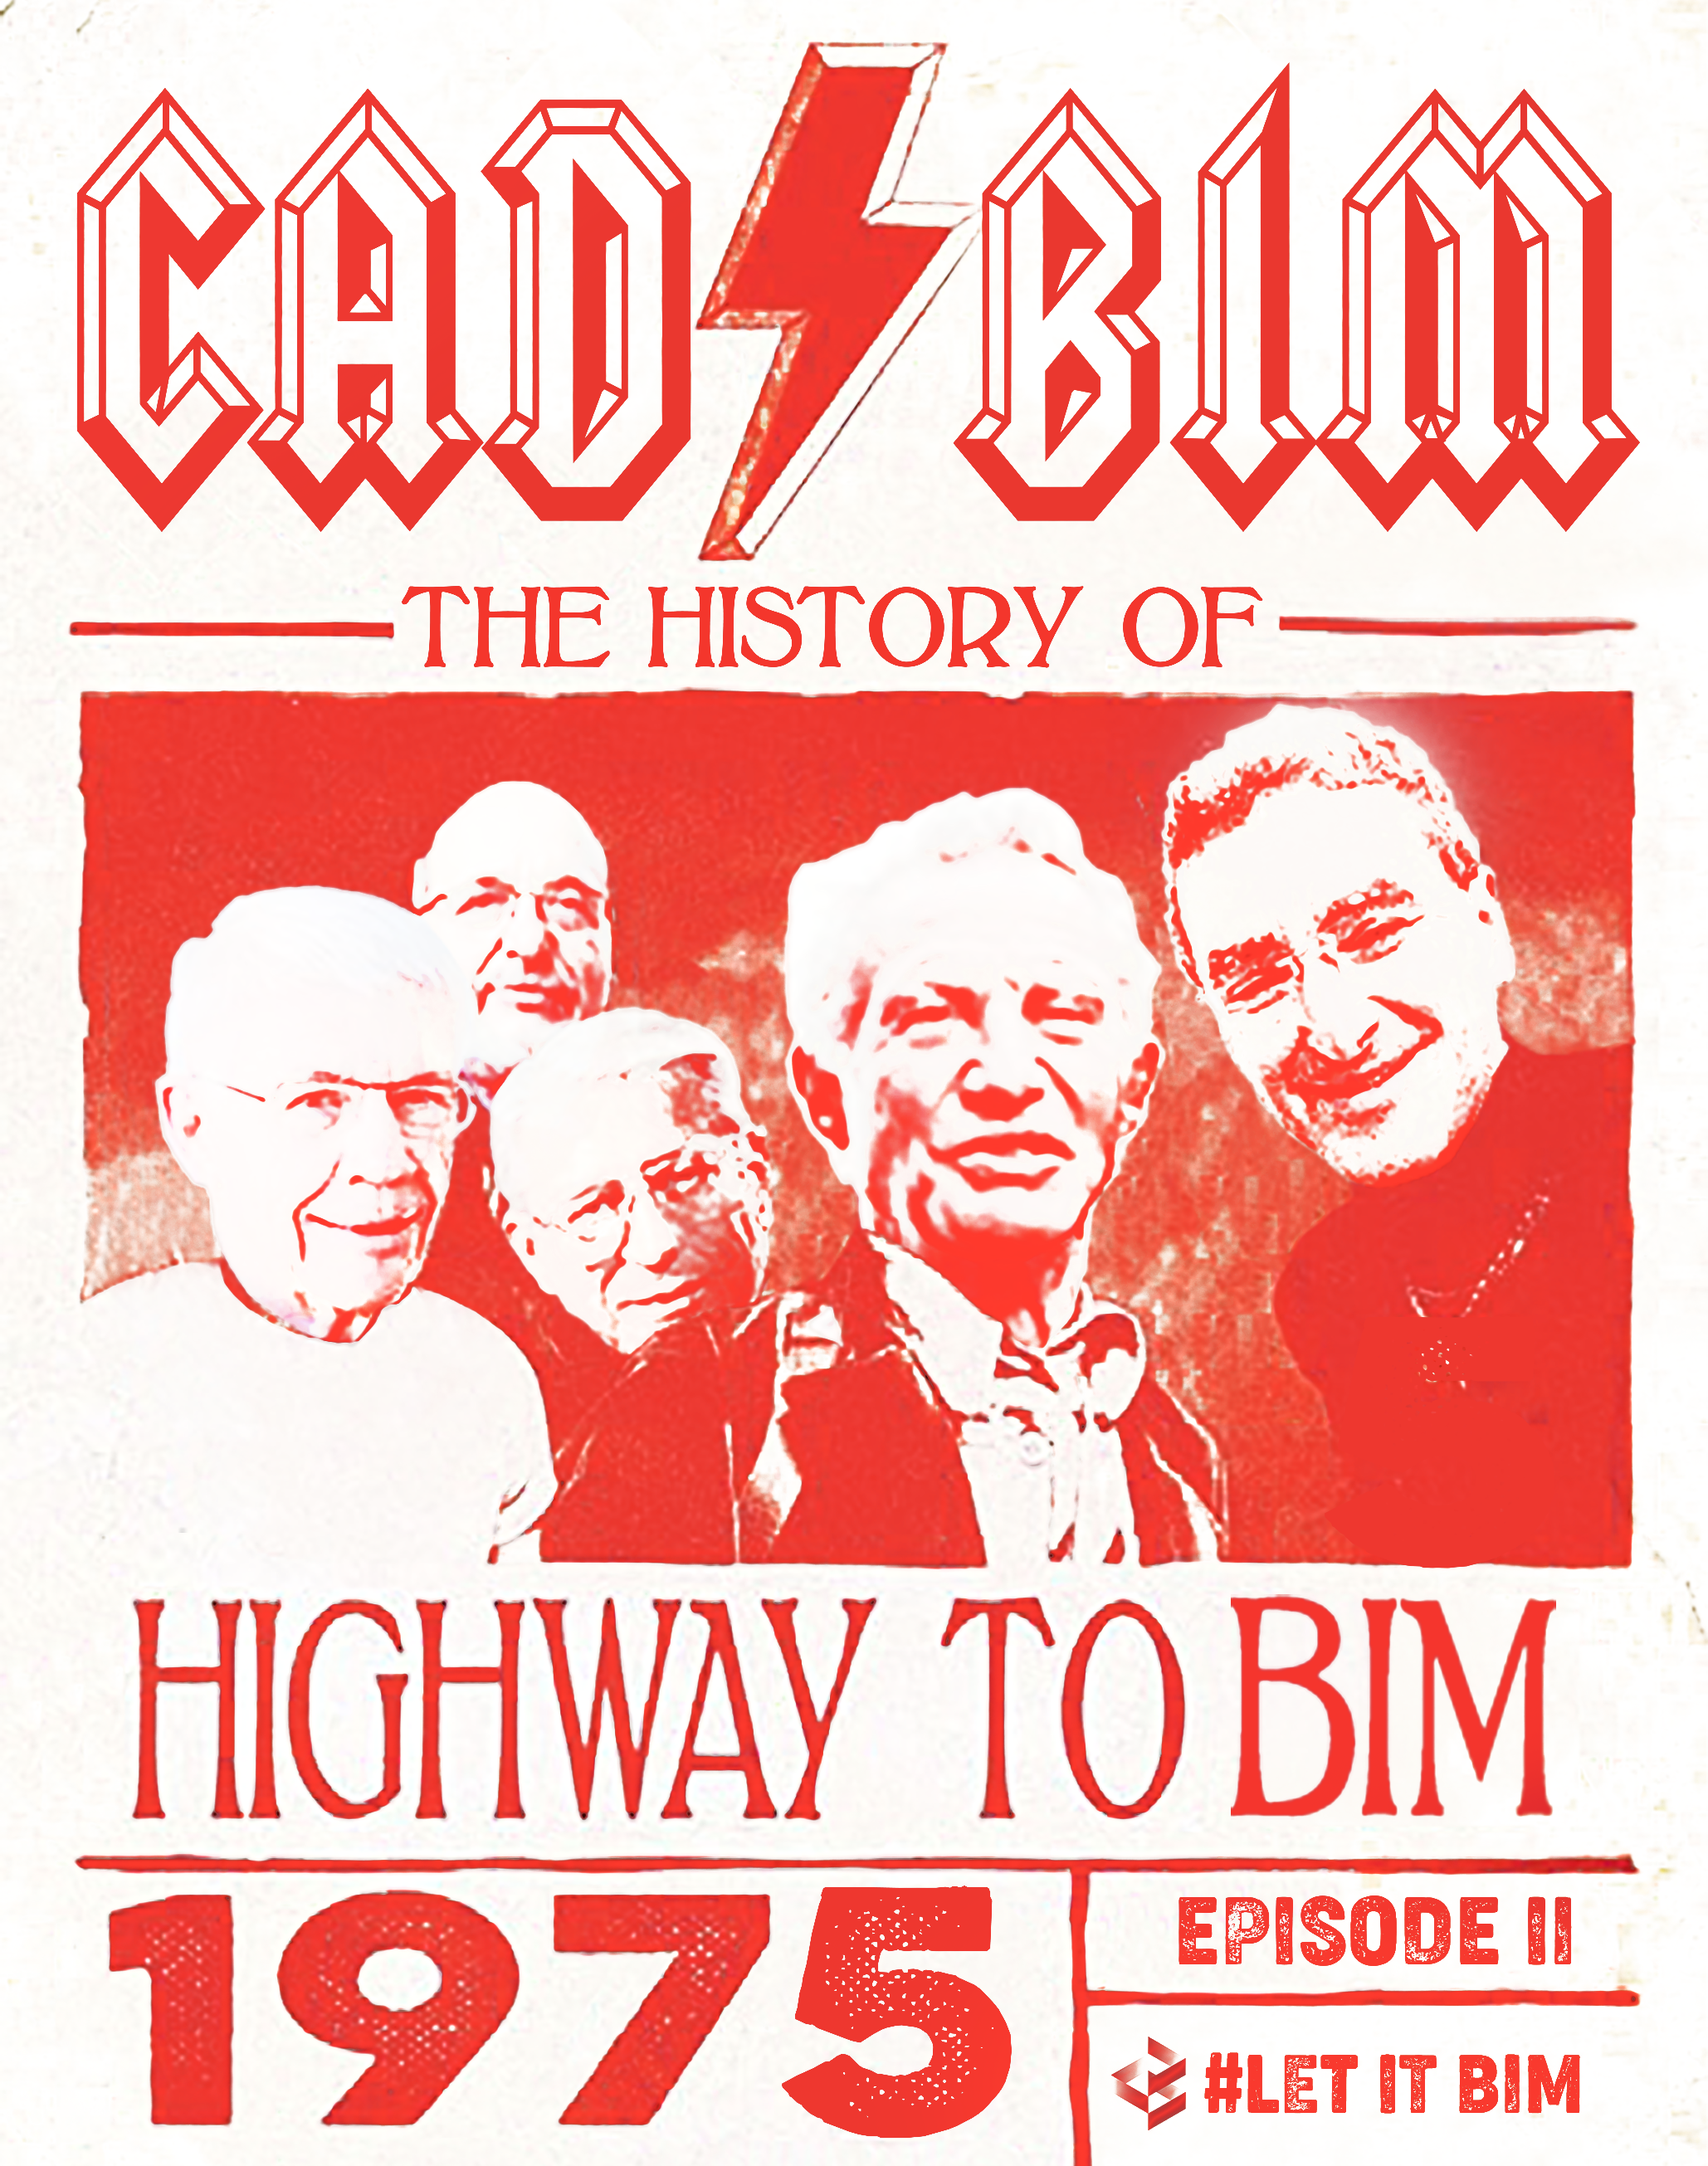 HIGHWAY TO BIM / La historia de BIM Episodio II